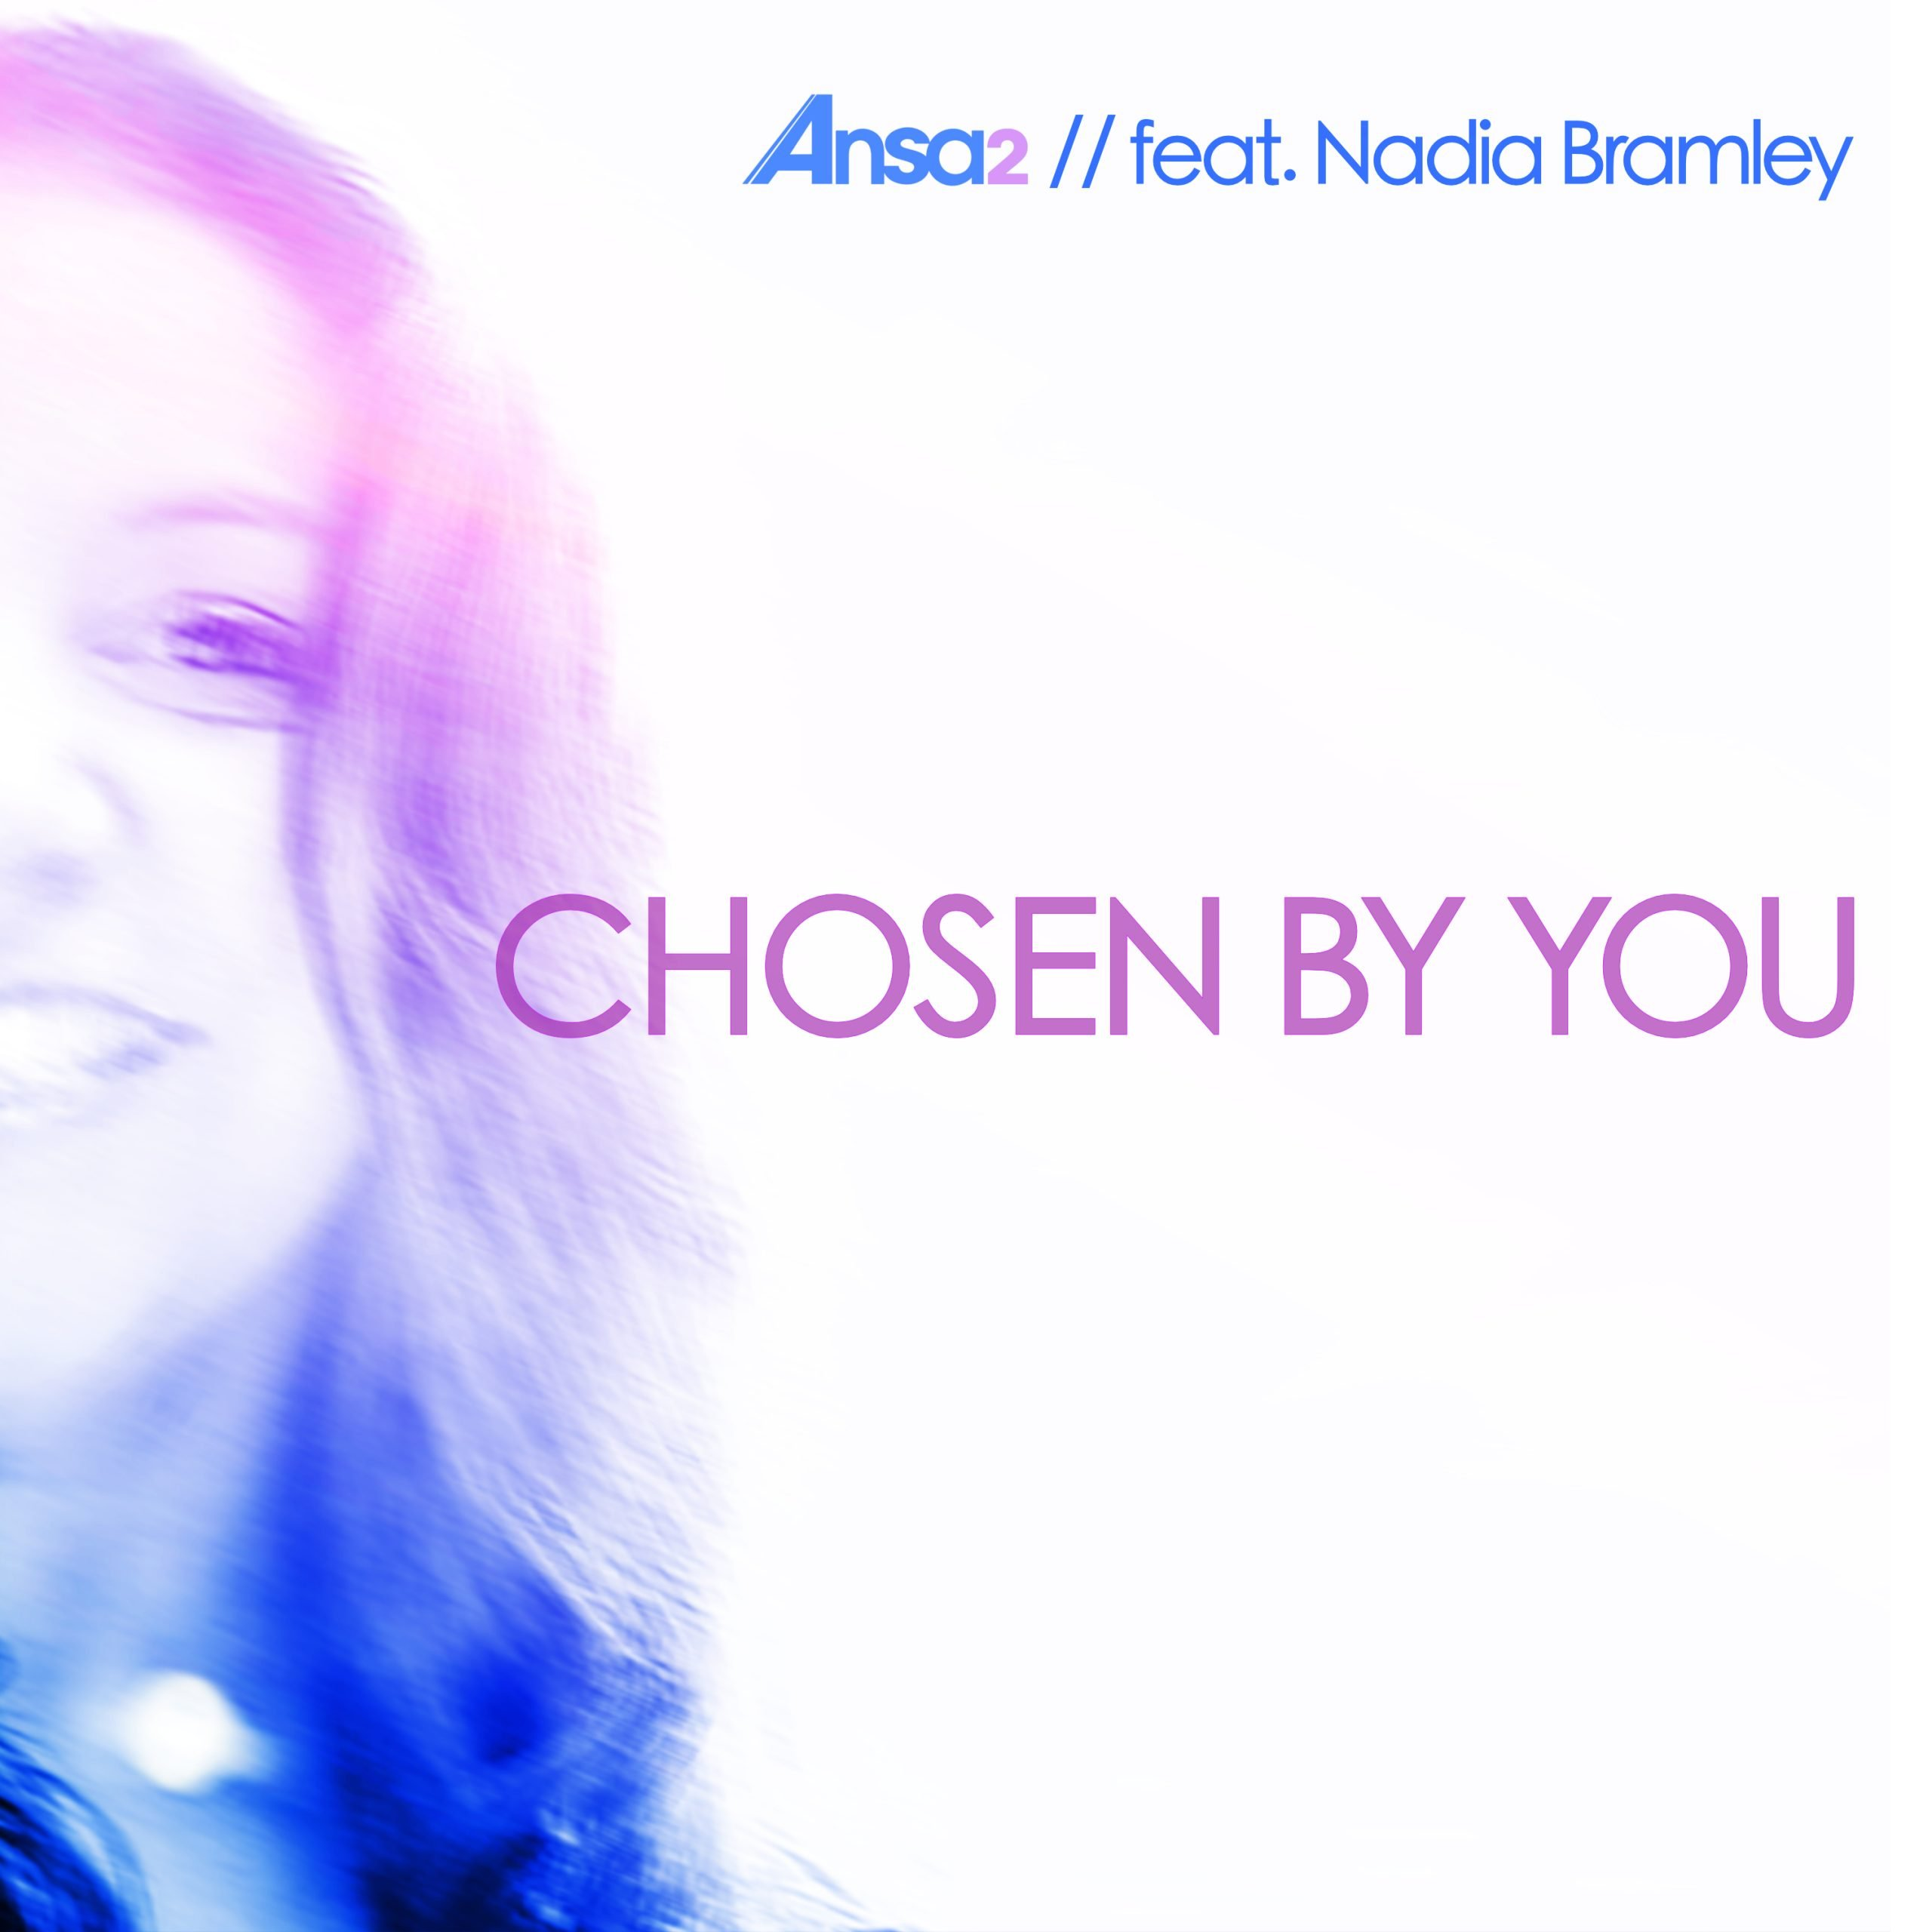 Chosen By You single cover art